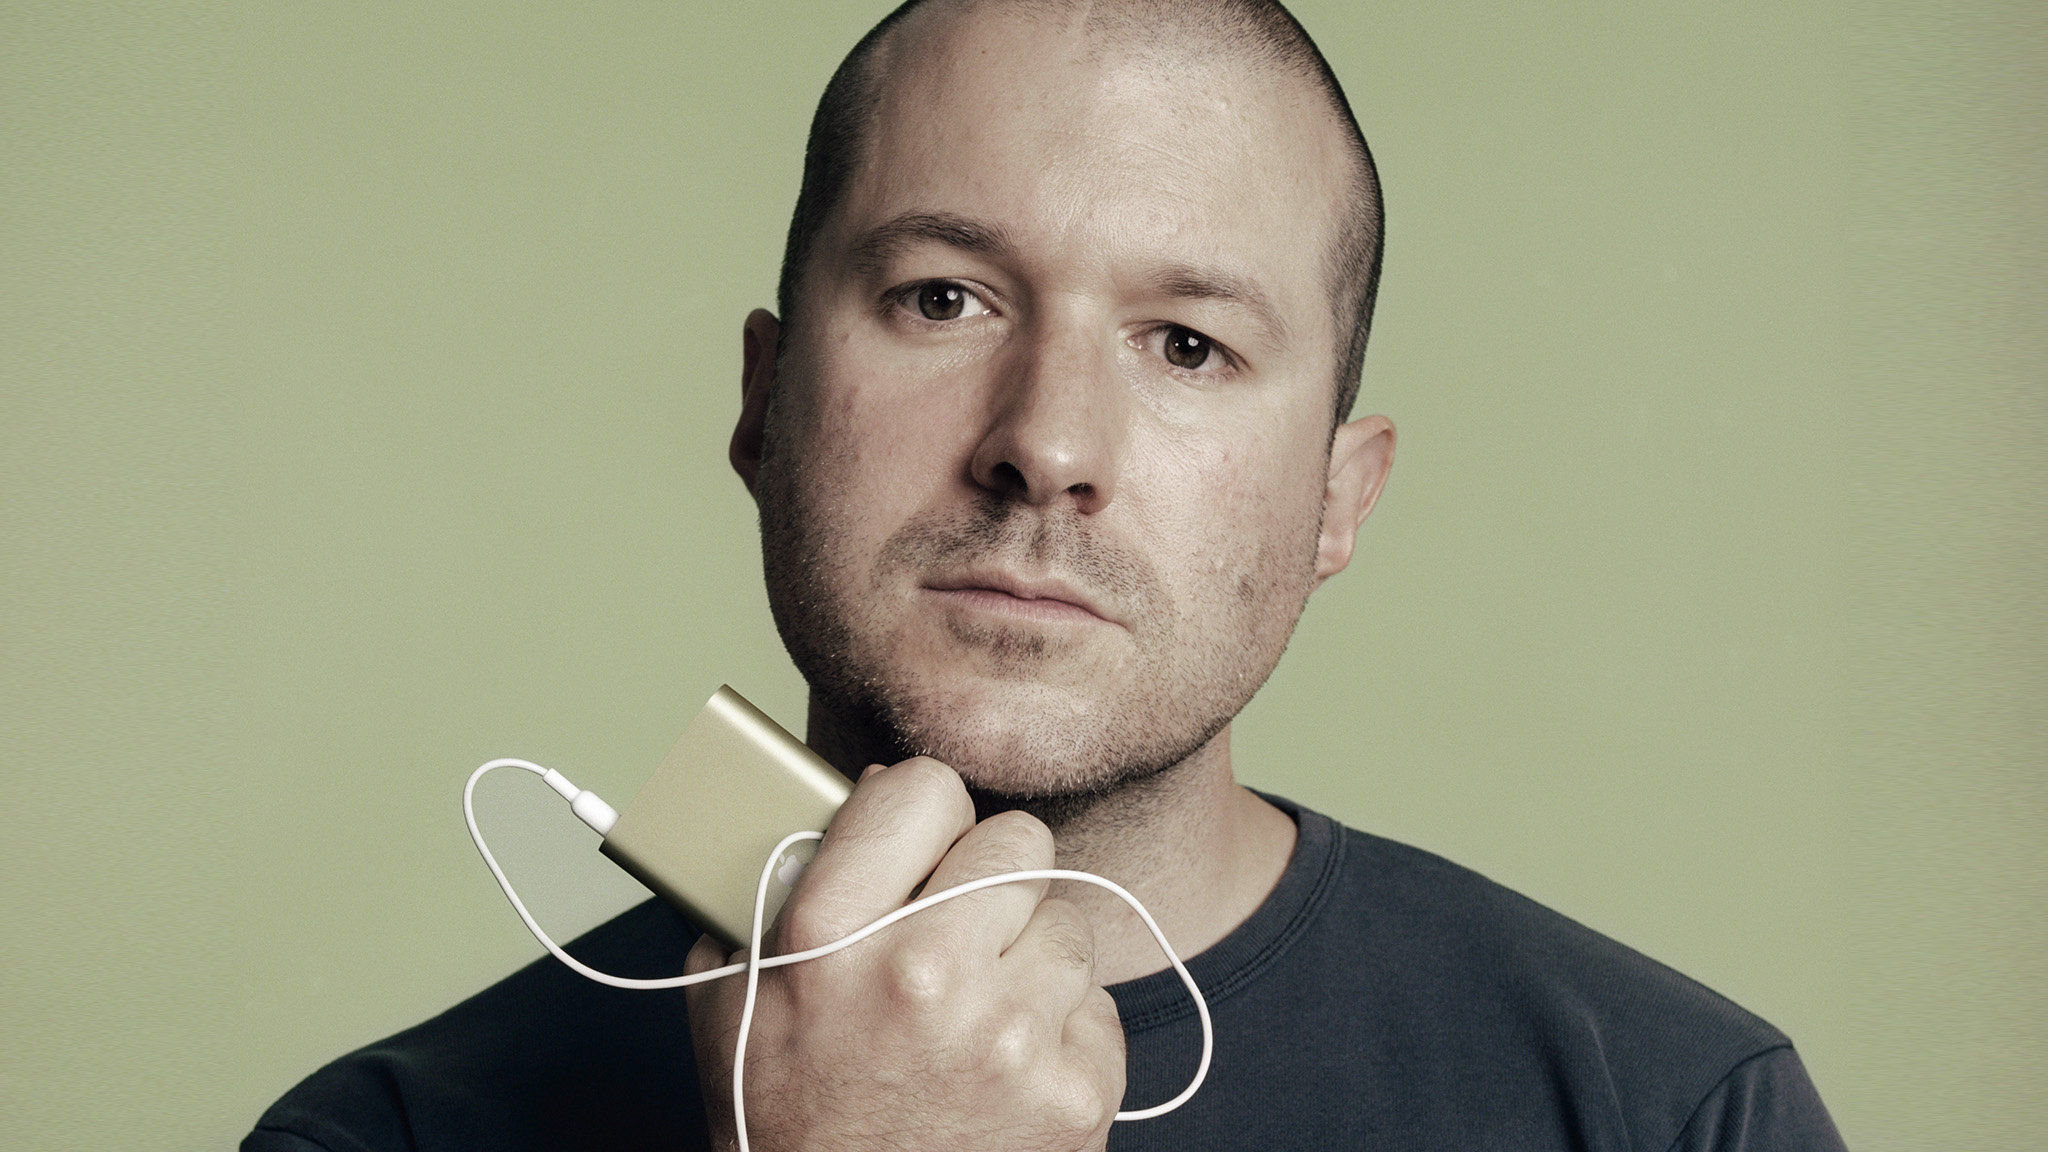 Jony Ive, iPhone designer, announces Apple departure